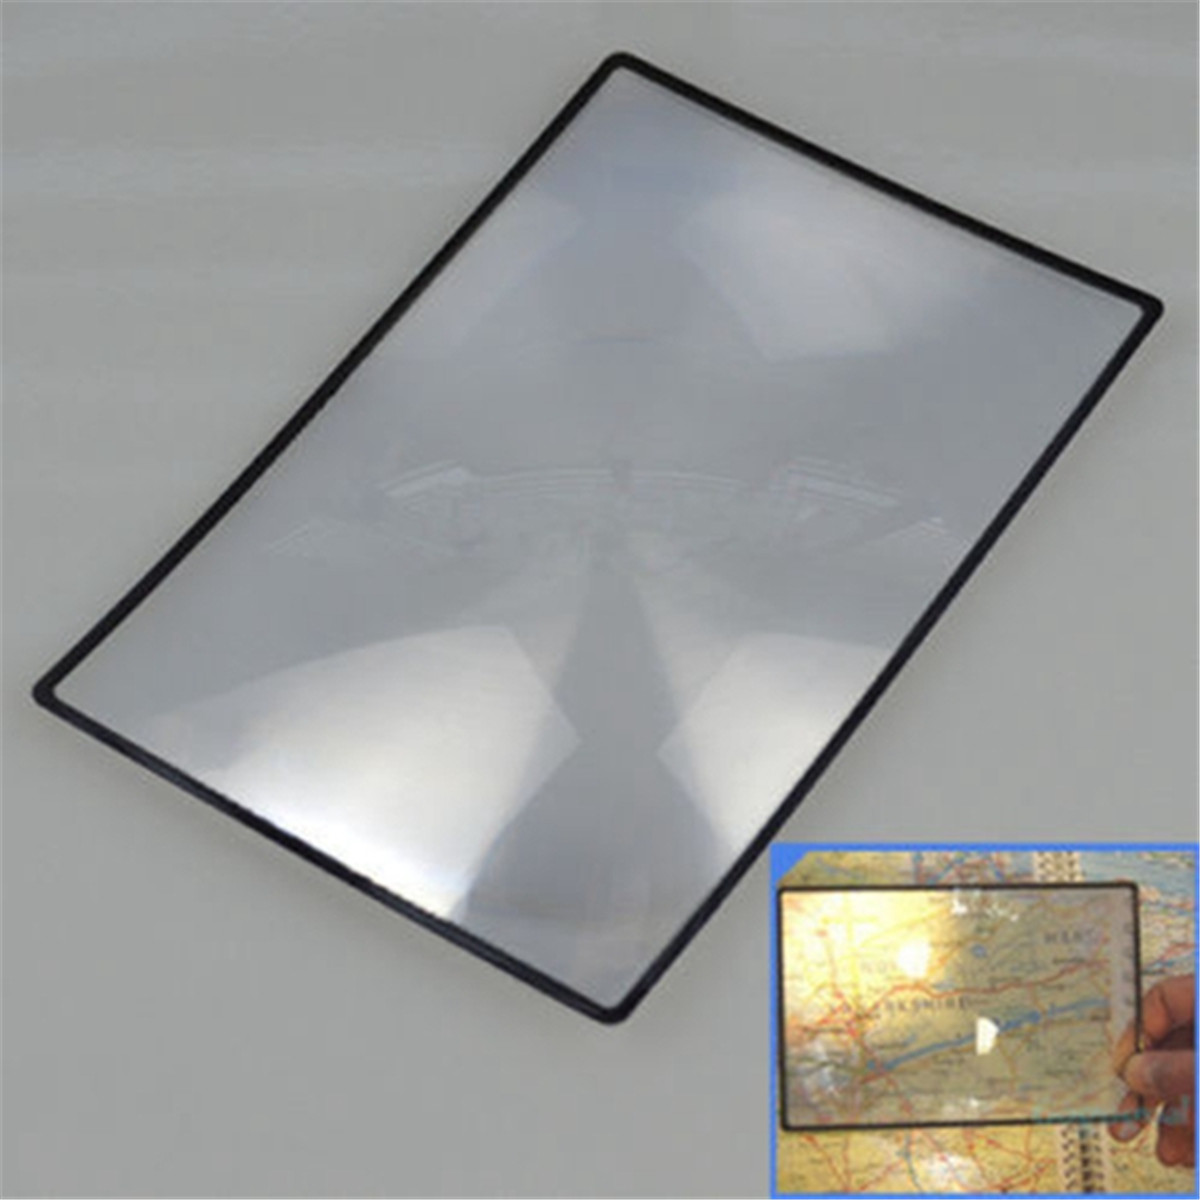 3 Led Light 10x 20x Magnifier Handheld Reading Magnifying